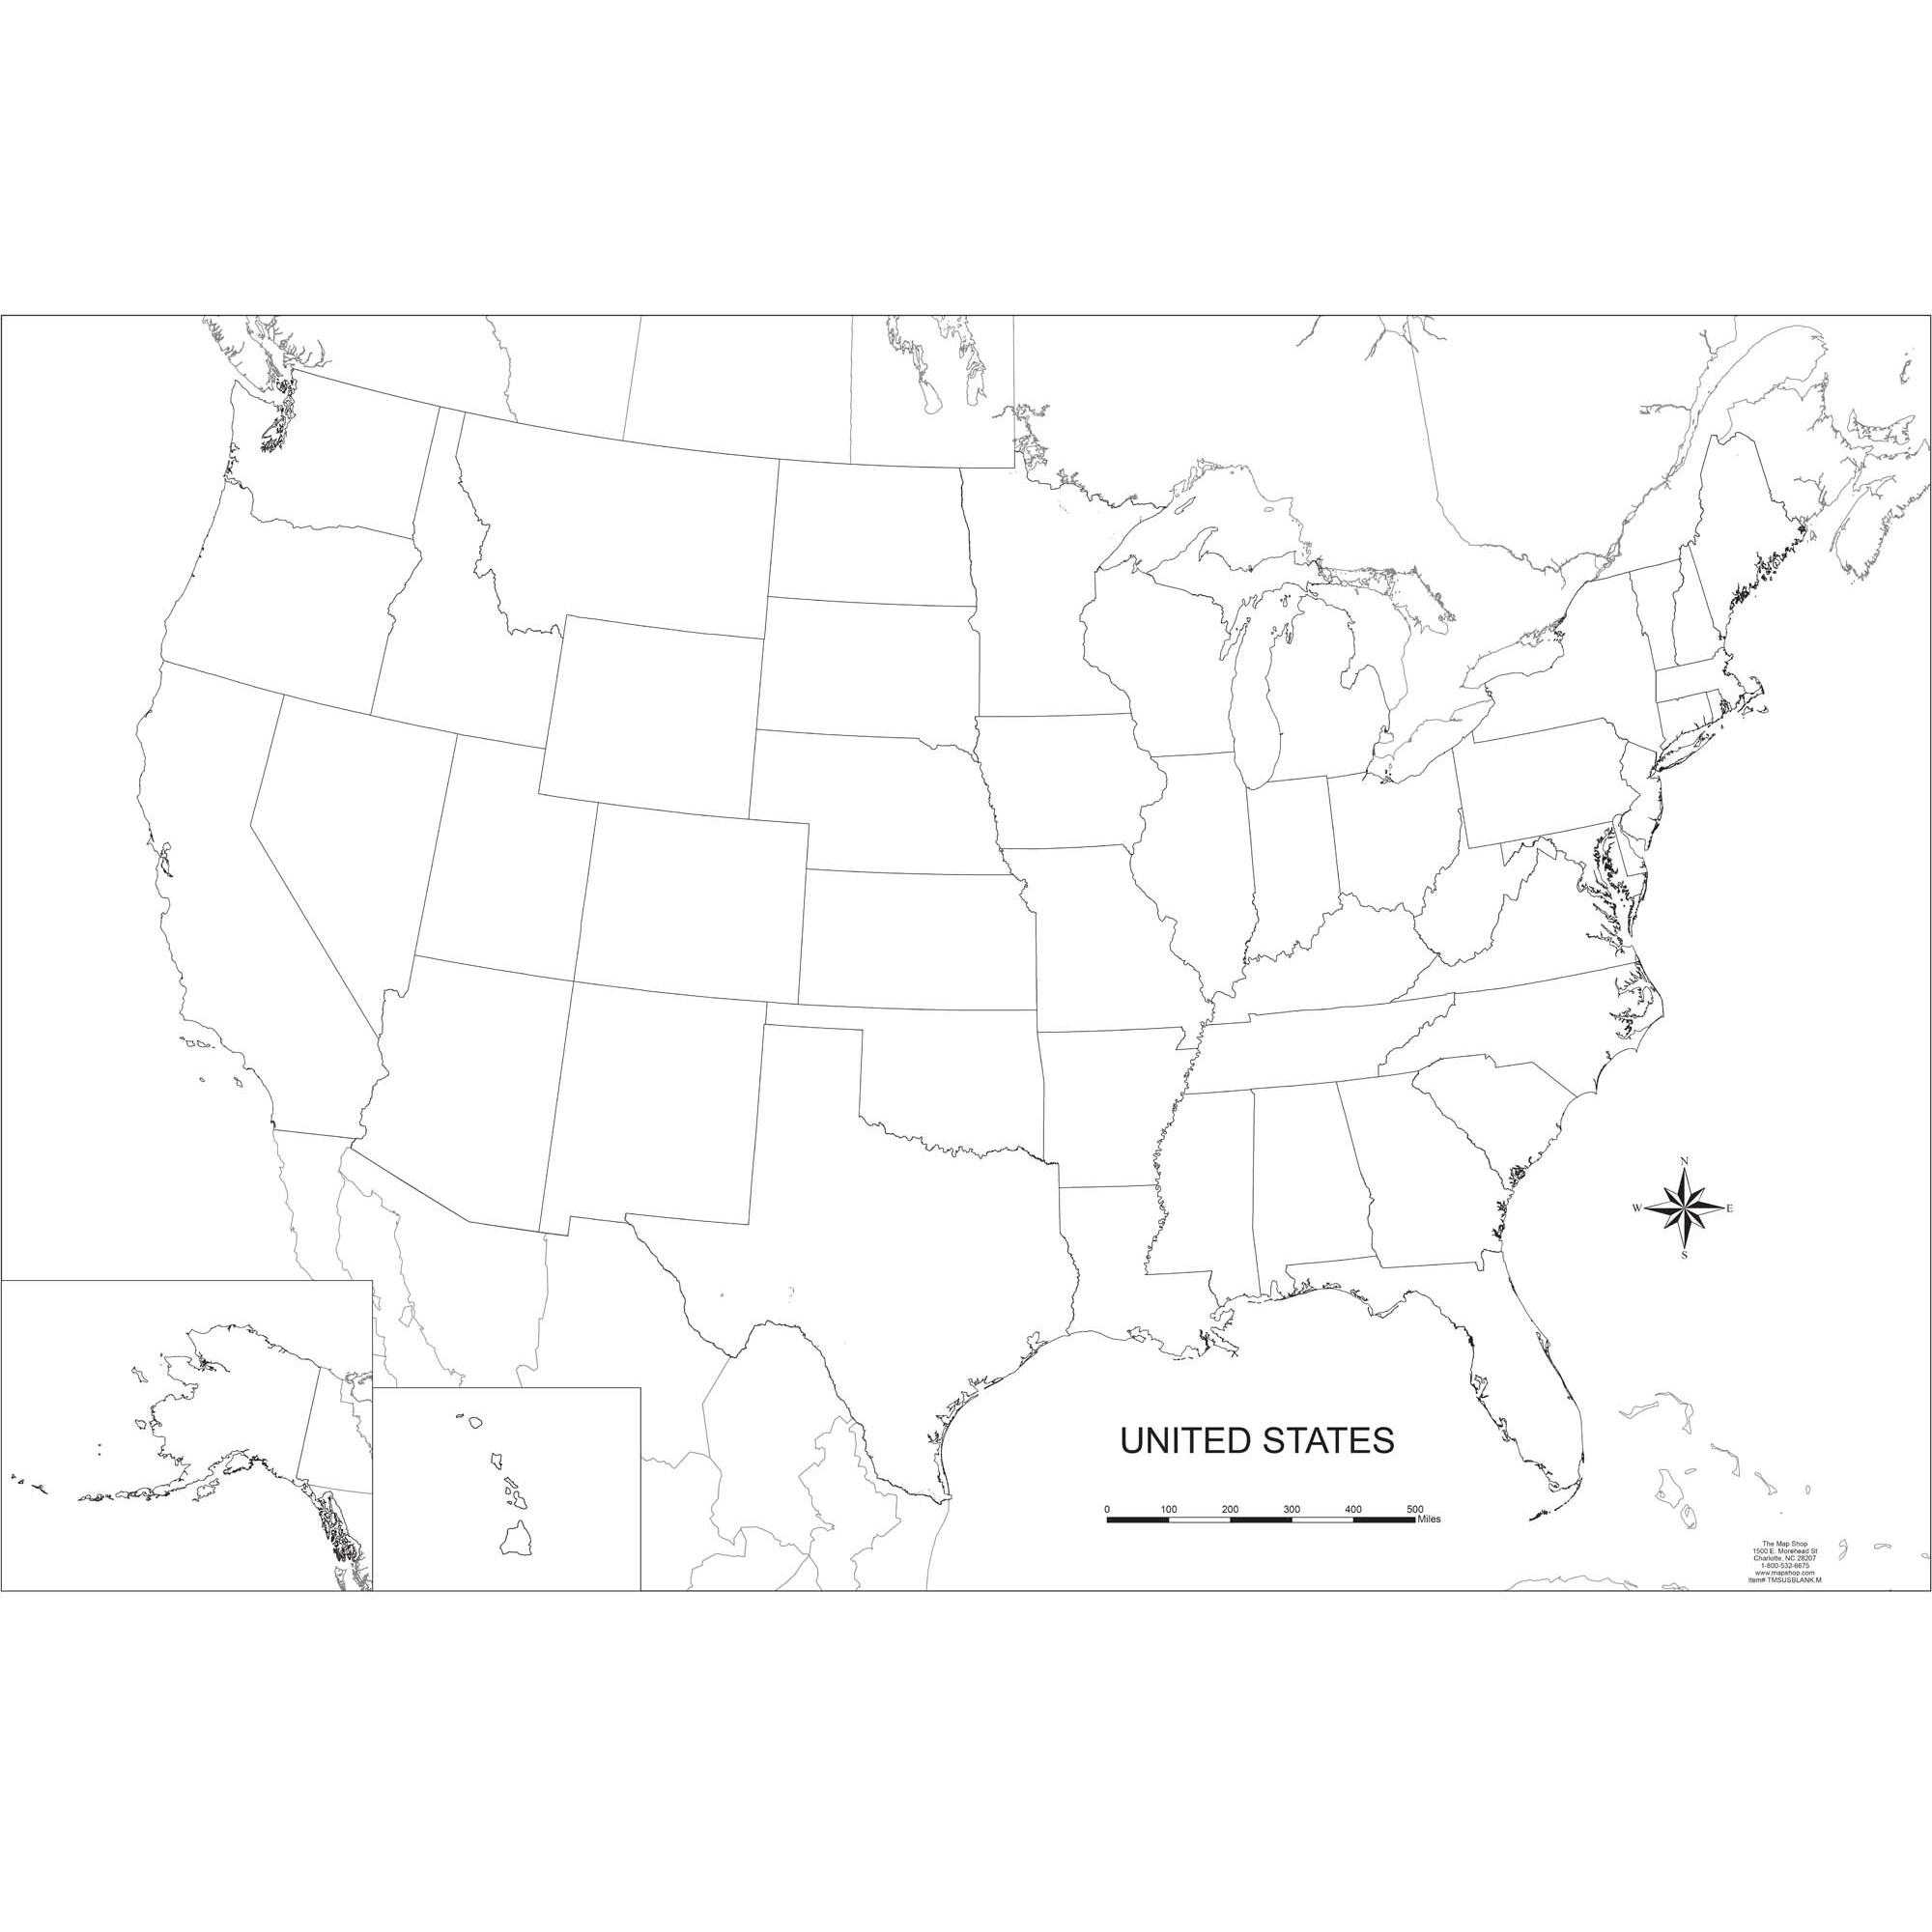 Blank United States Outline Wall Map Throughout United States Map Template Blank